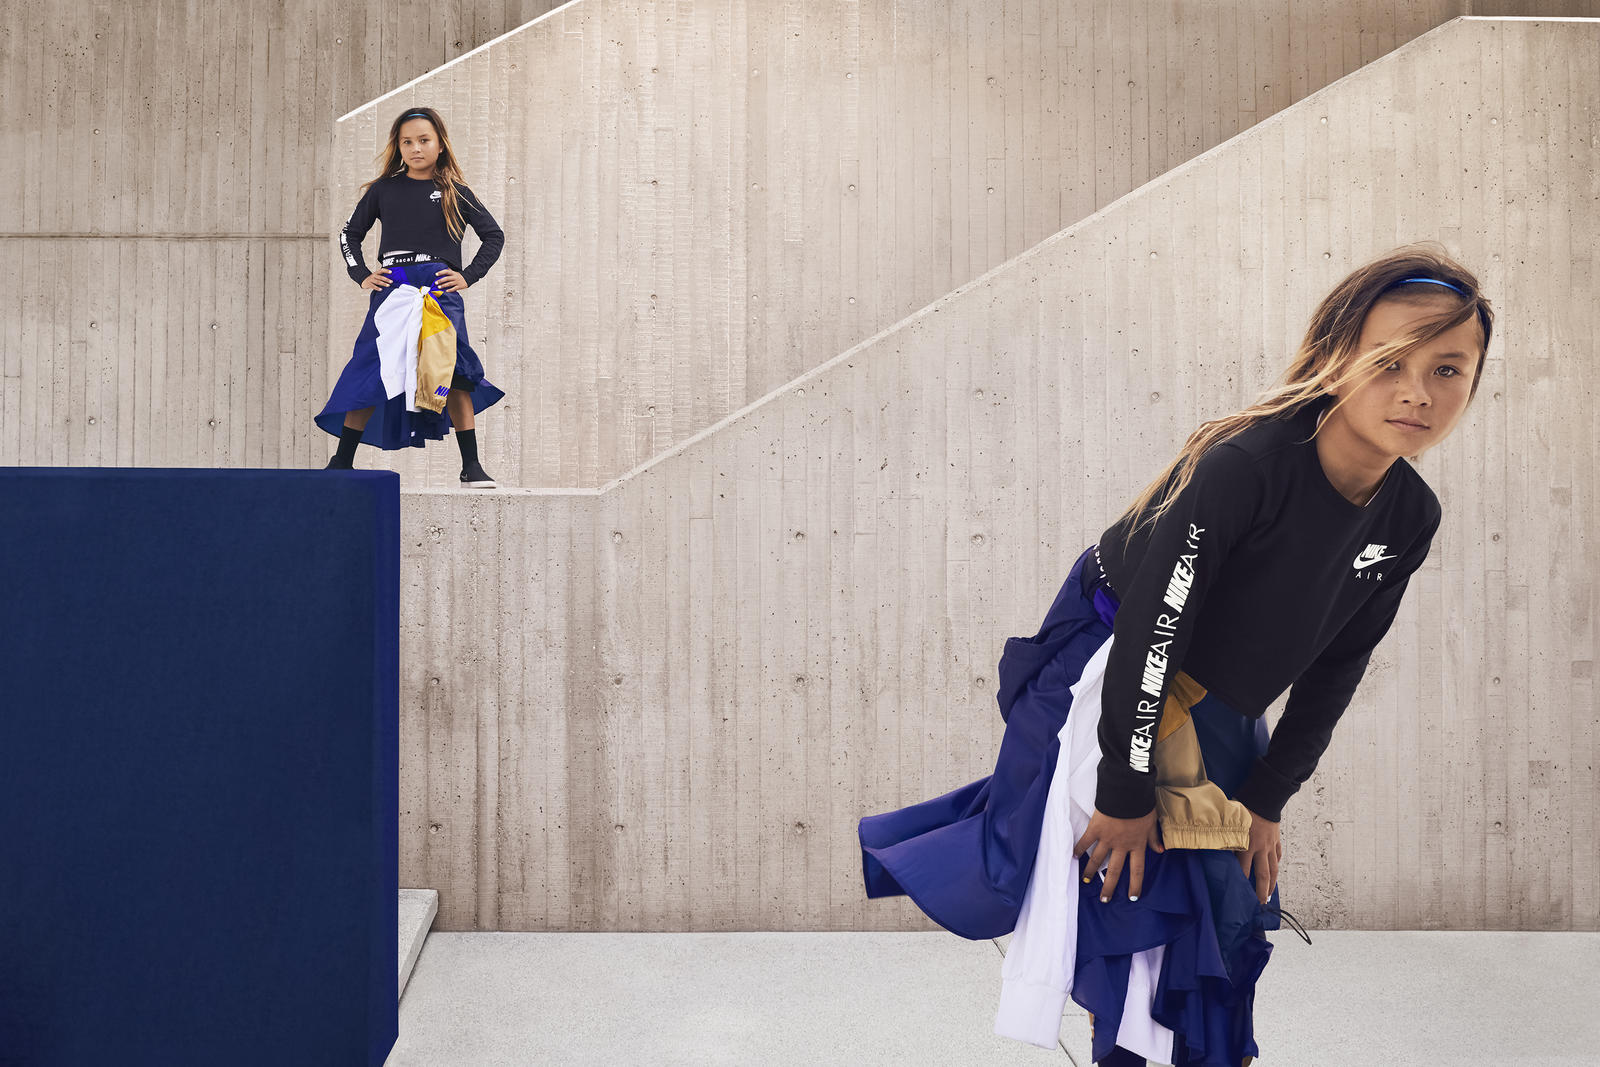 SU19_SACAI_ASSETS_STILLS_SECONDARY_01_native_1600